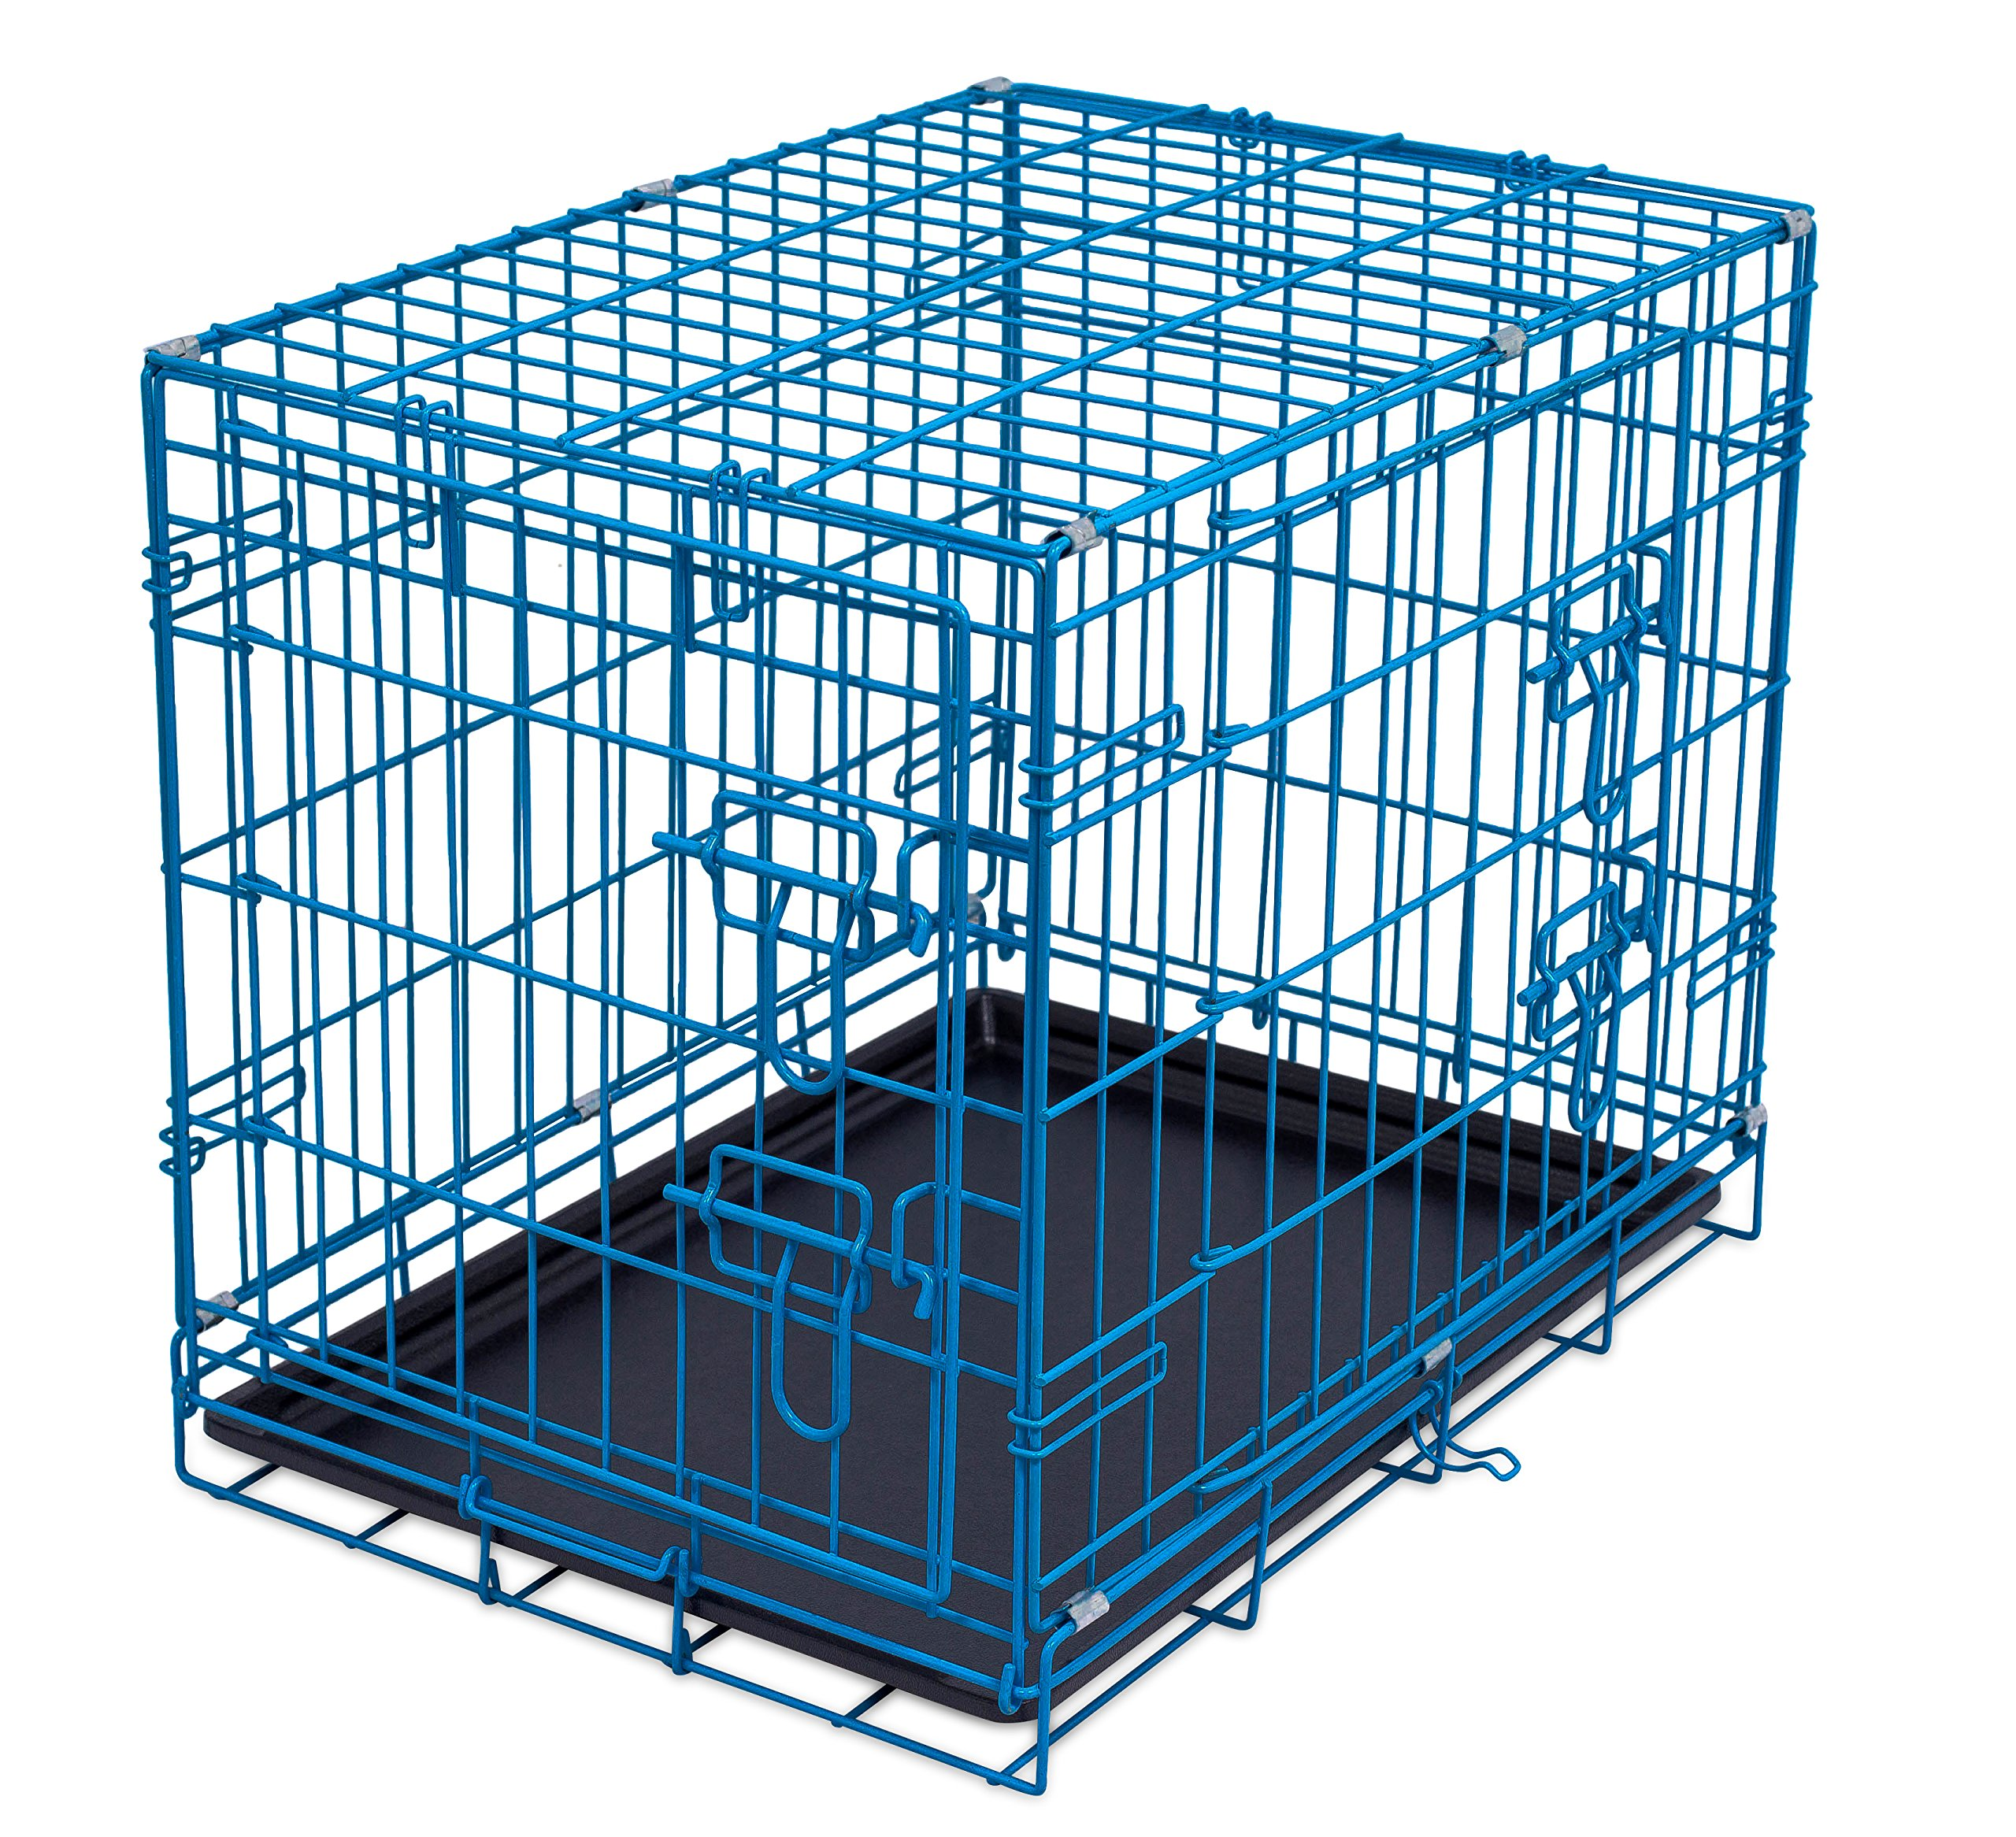 Internet's Best Double Door Steel Crates Collapsible and Foldable Wire Dog Kennel, 24 Inch (Small), Blue by Internet's Best (Image #1)